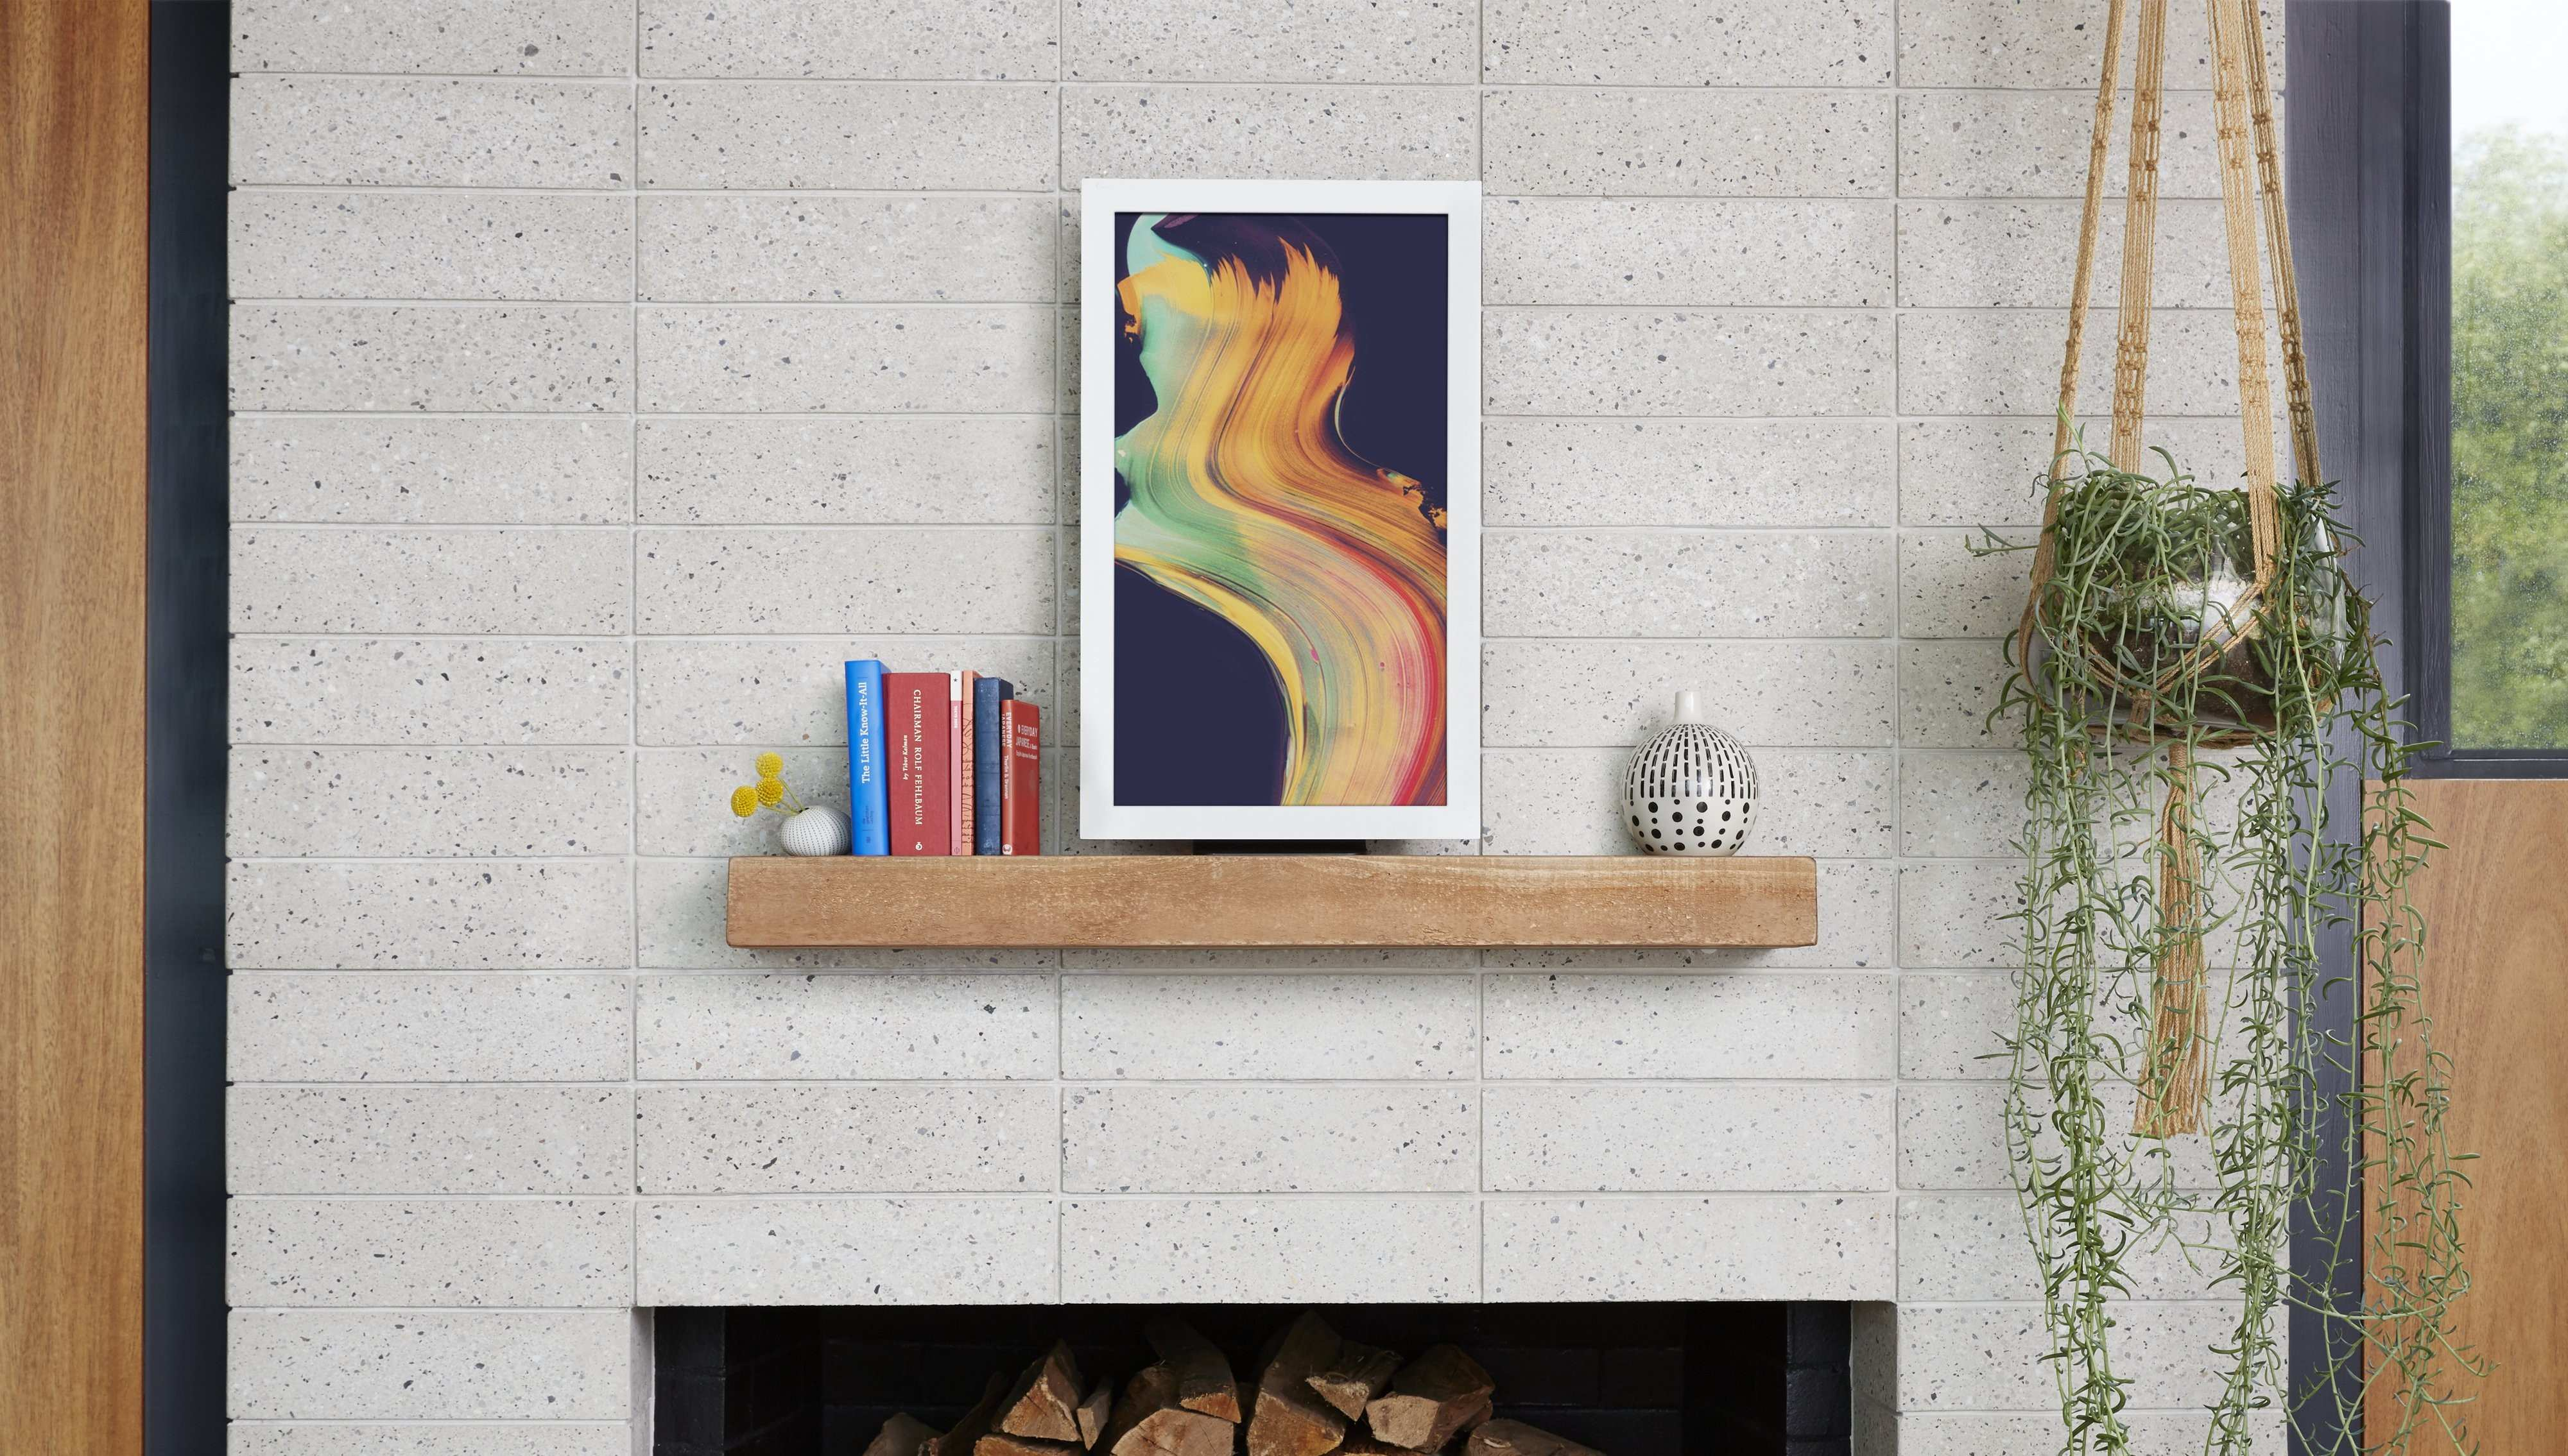 Hands With 3 Digital Picture Frames for the Home